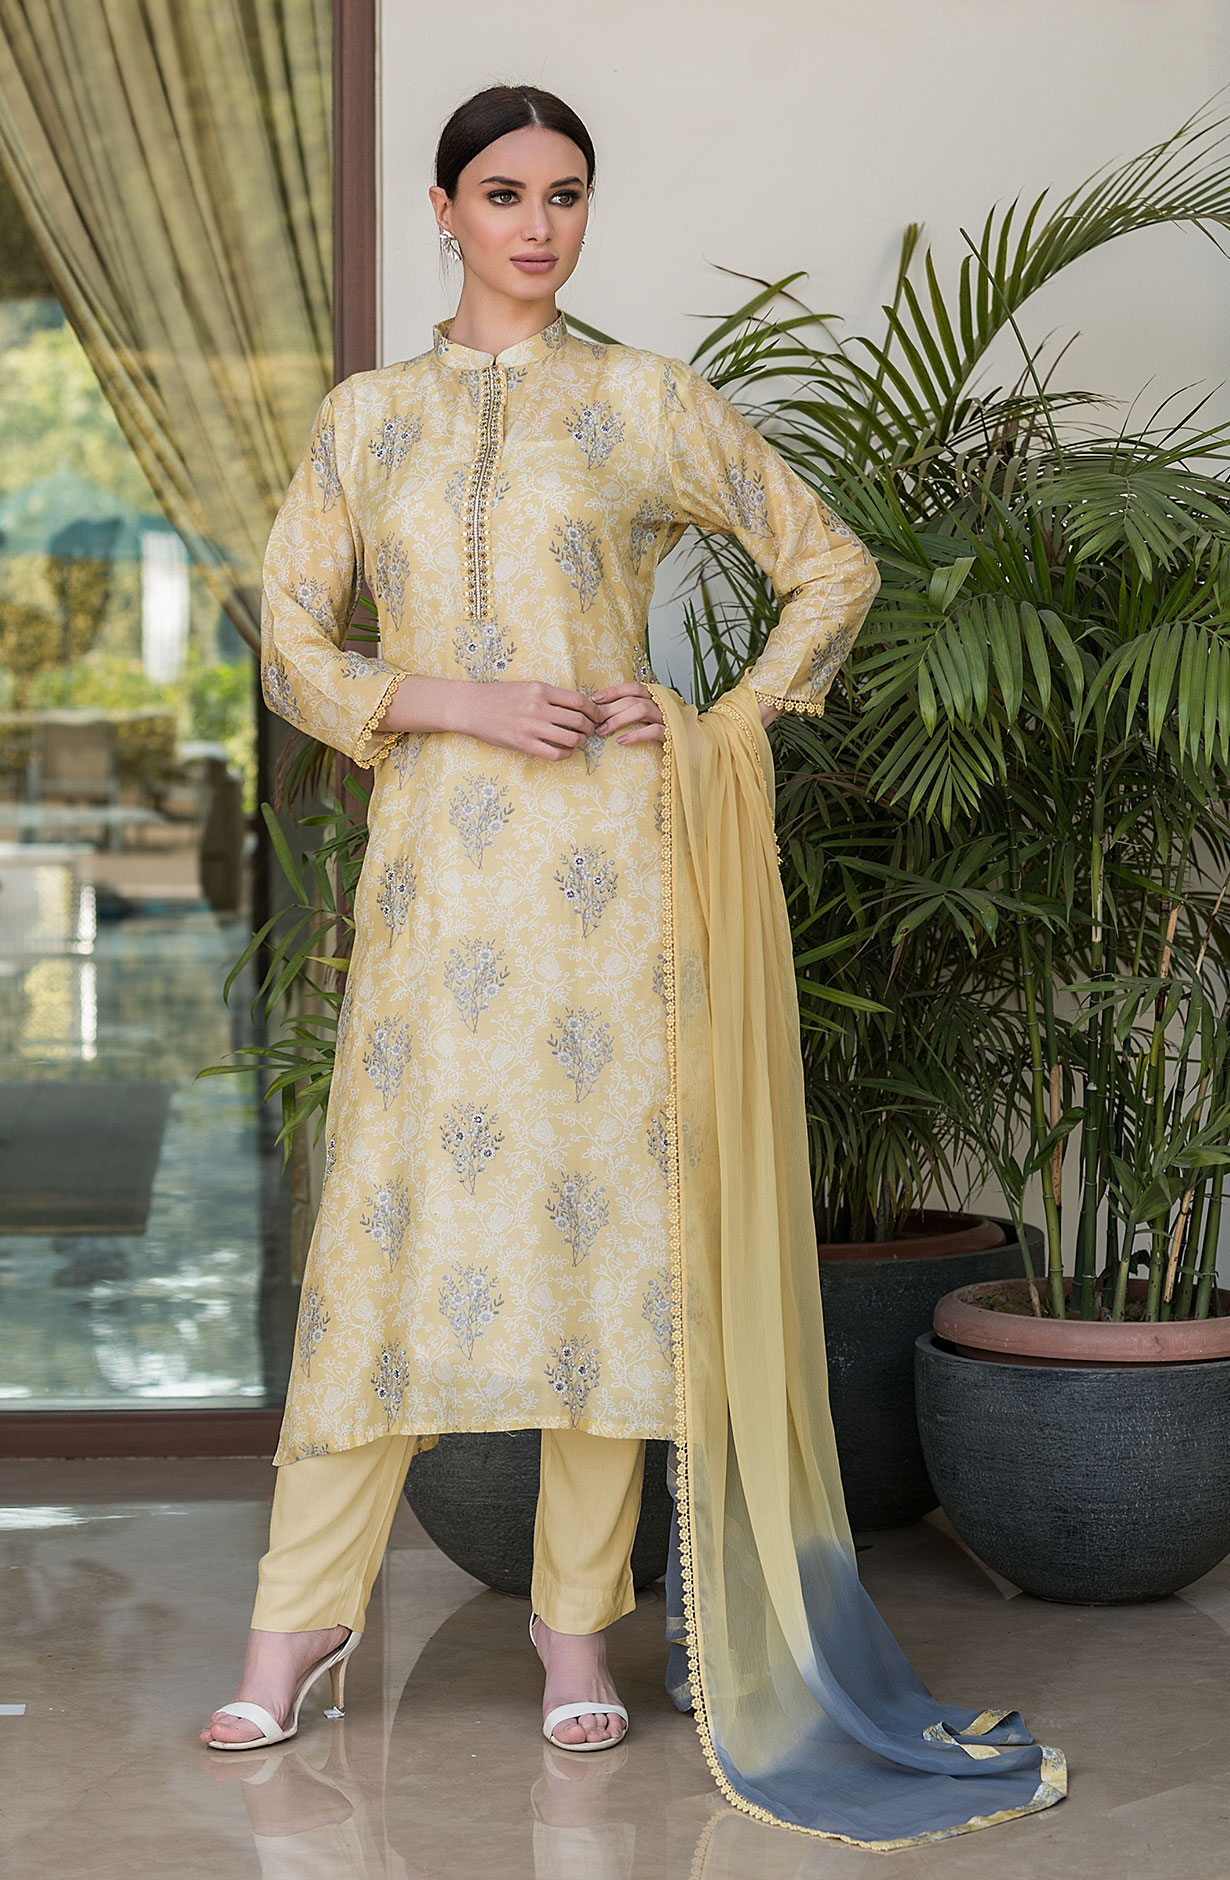 Modal Cotton Semi-stitched Suit Sets in Yellow with Chiffon Dupatta - 245-8301